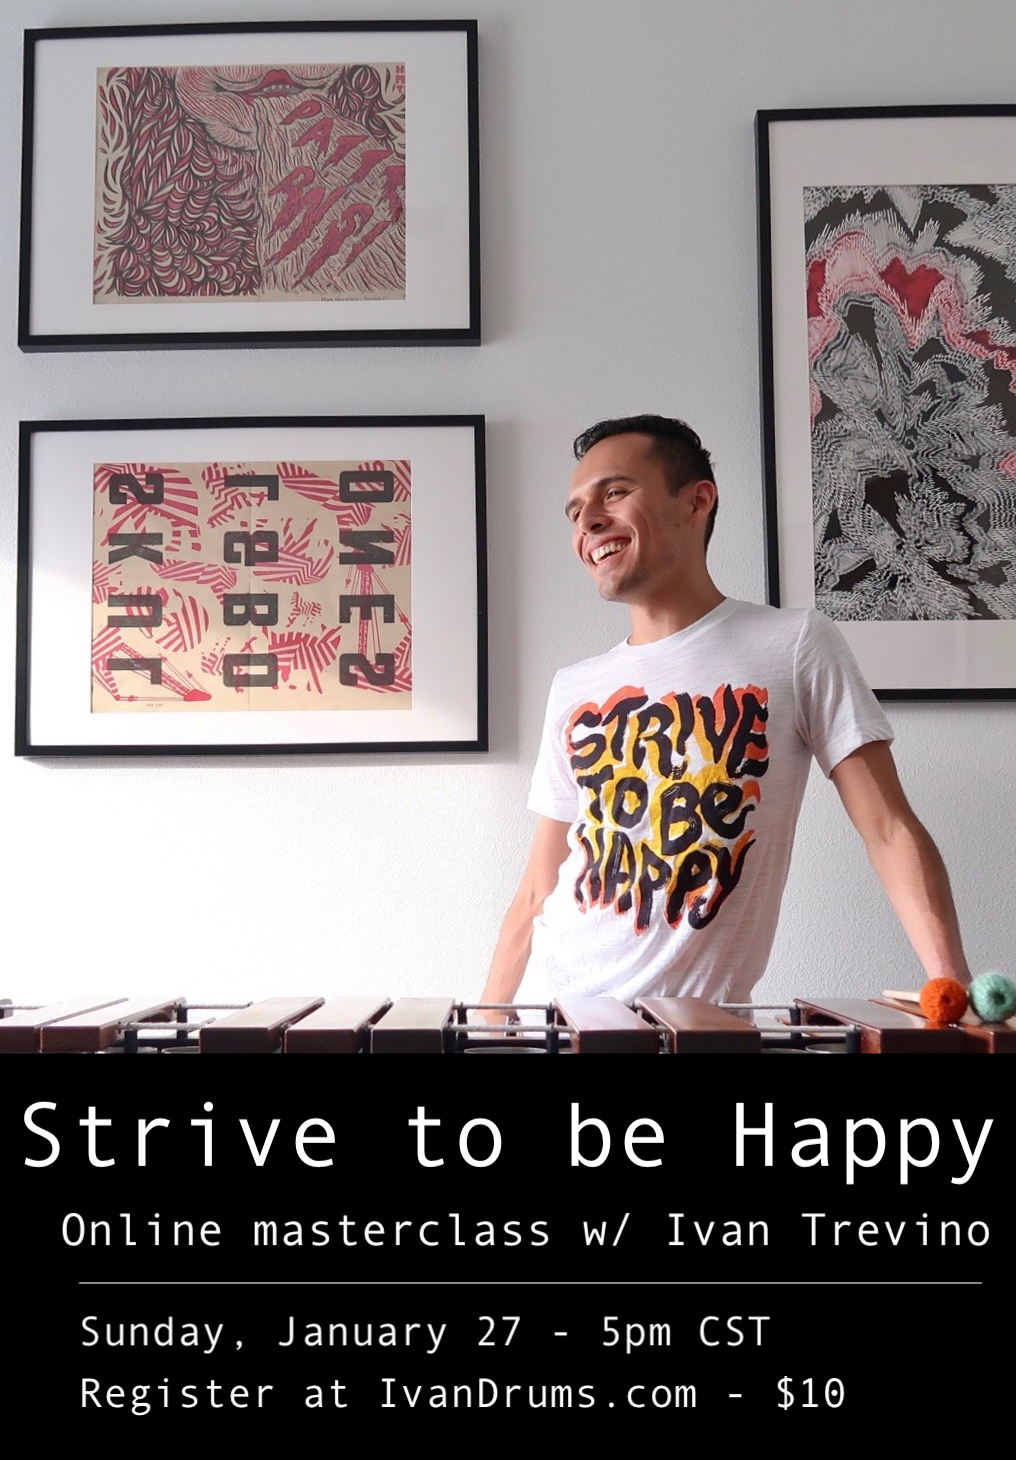 Strive to be Happy online masterclass